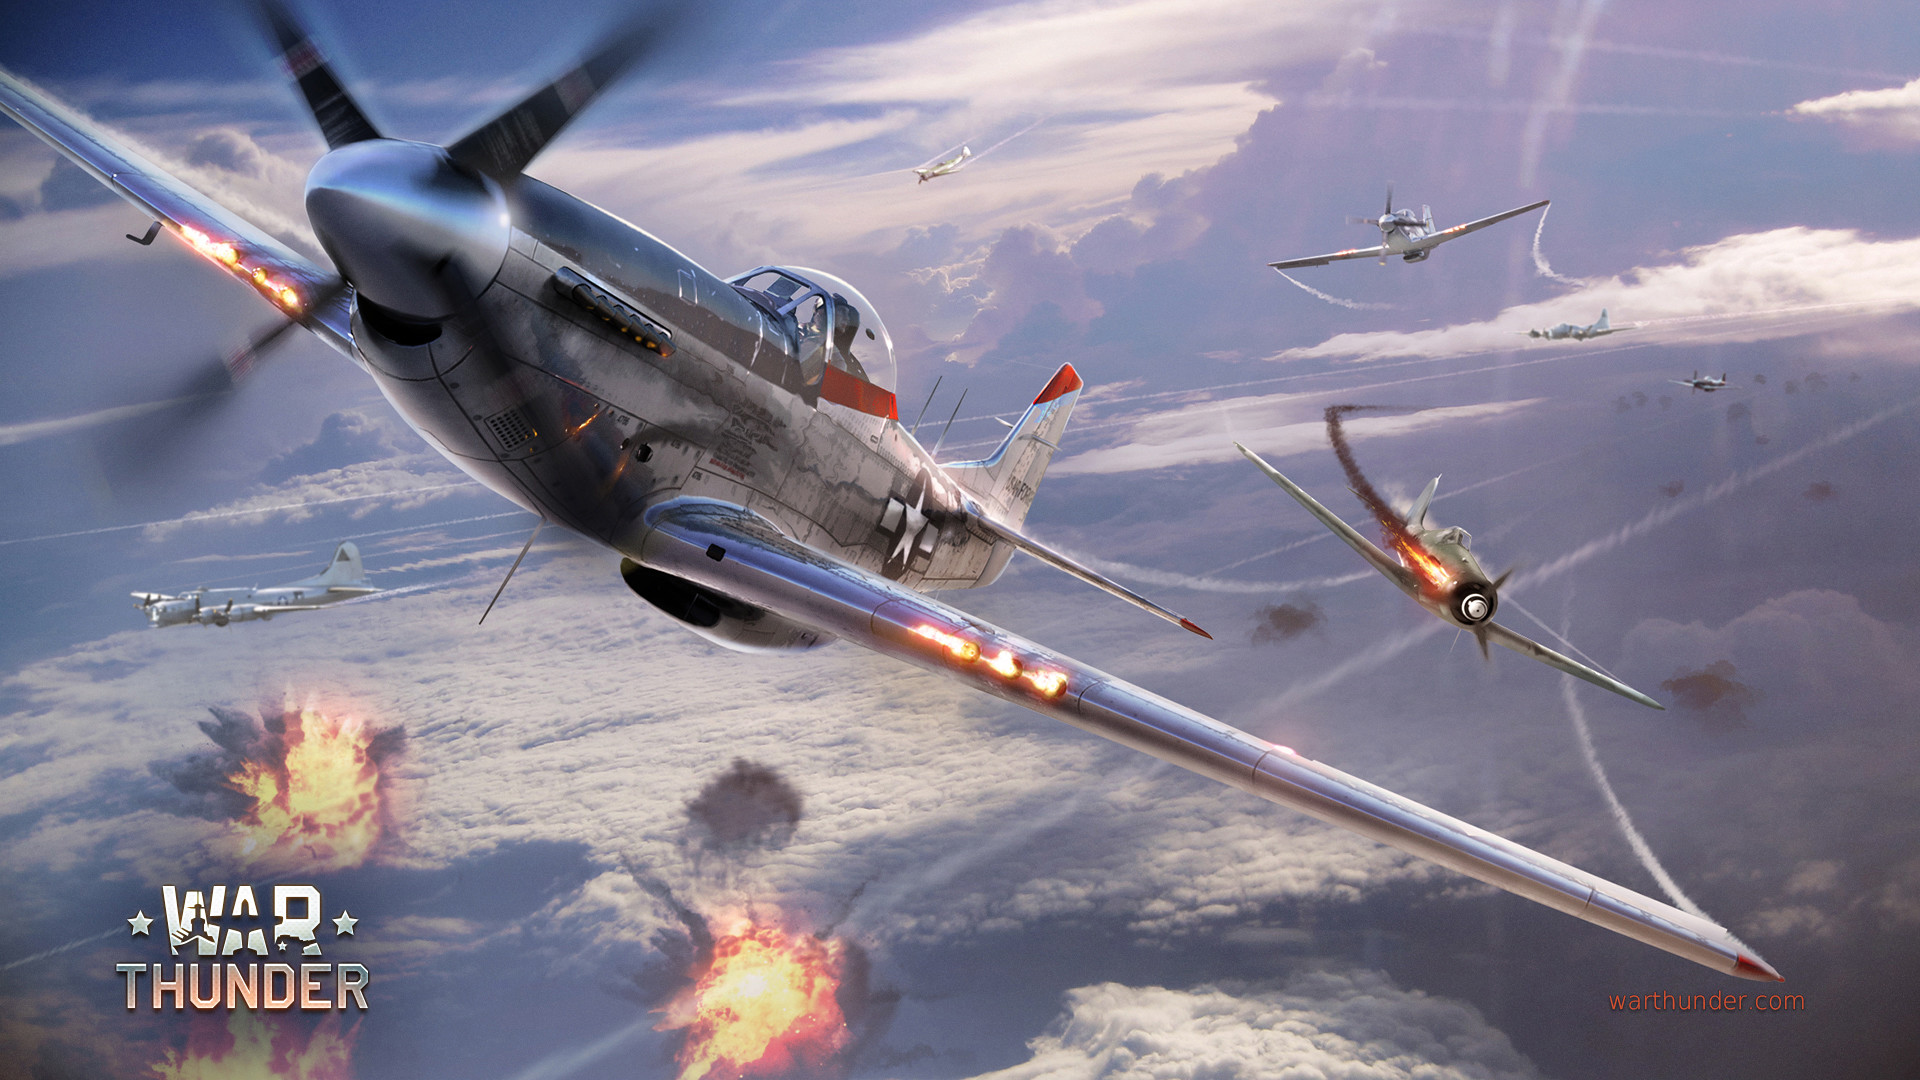 The best fighters of World War 2